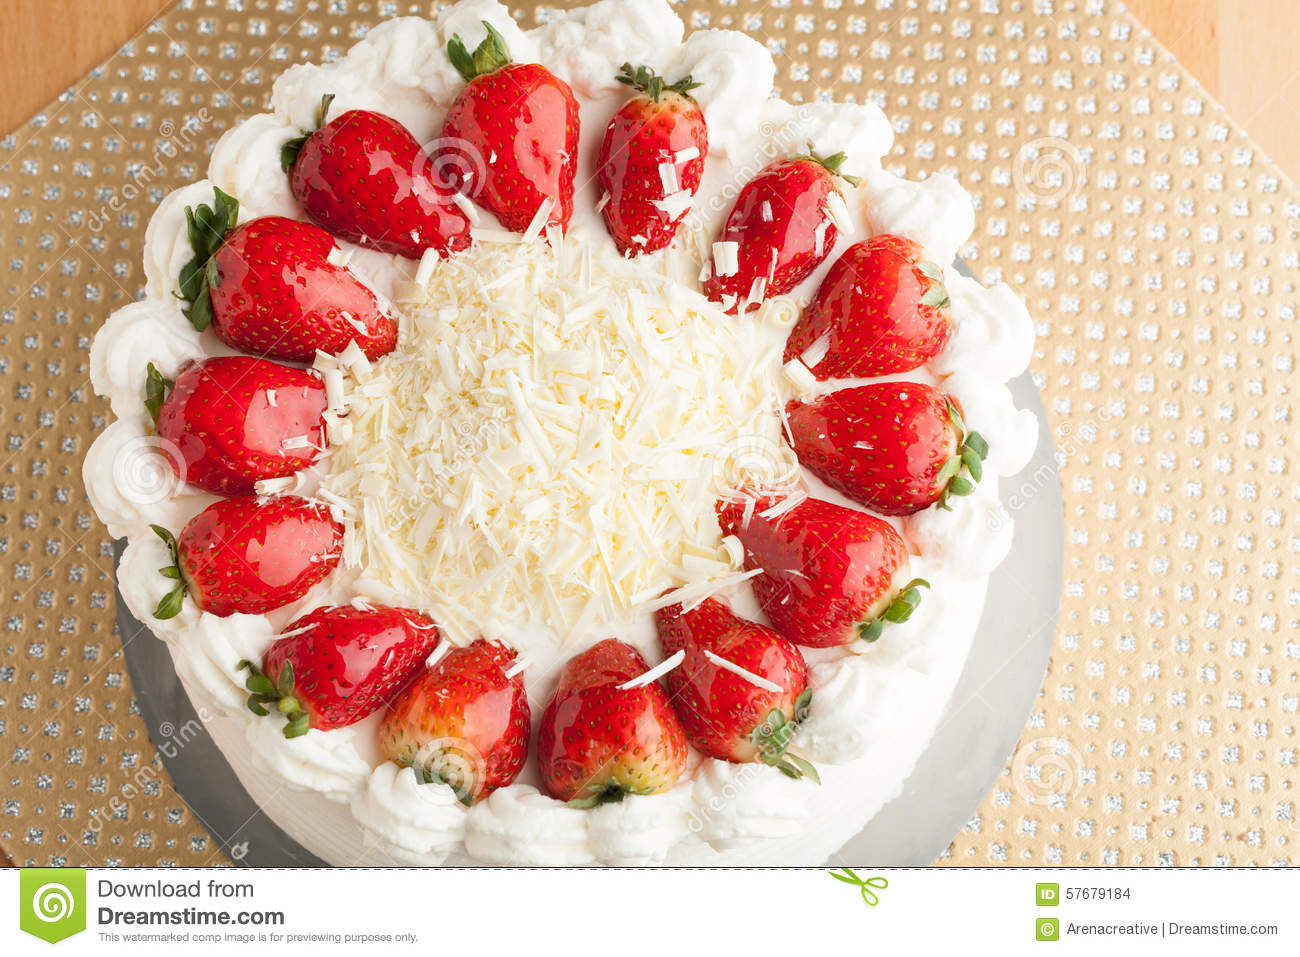 Cake Clipart Top View : White Chocolate Strawberry Cake Stock Photo - Image: 57679184